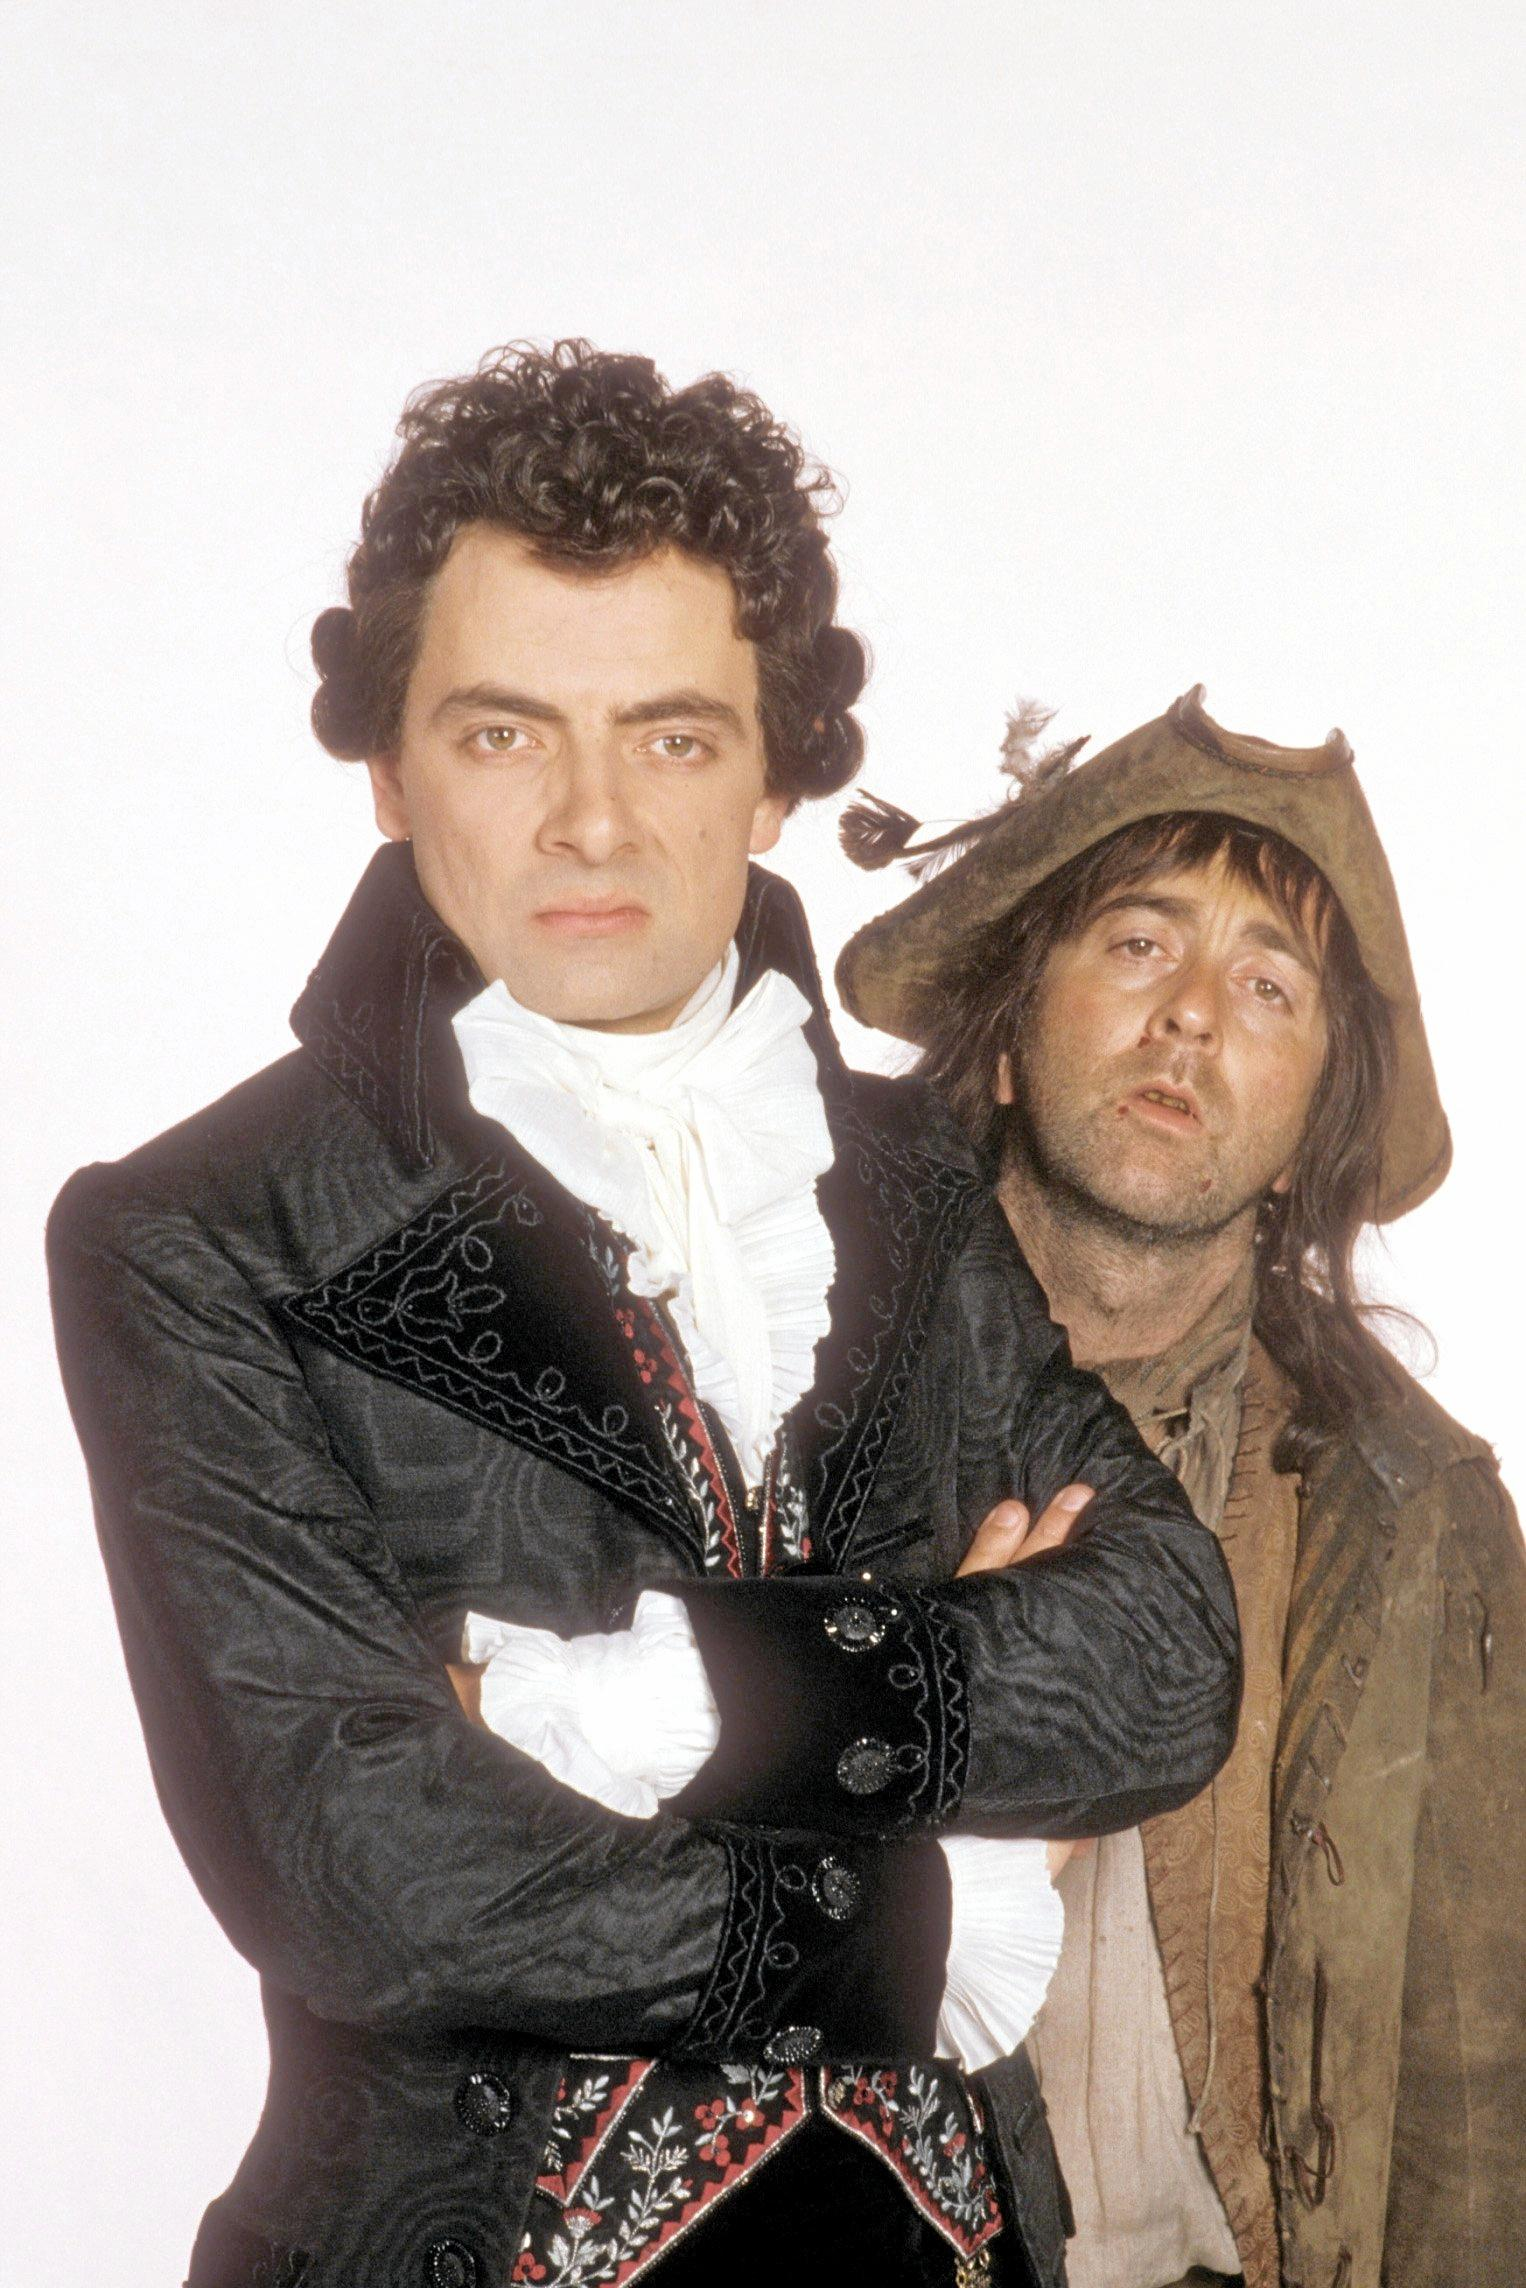 Rowan Atkinson and Tony Robinson from BlackAdder.